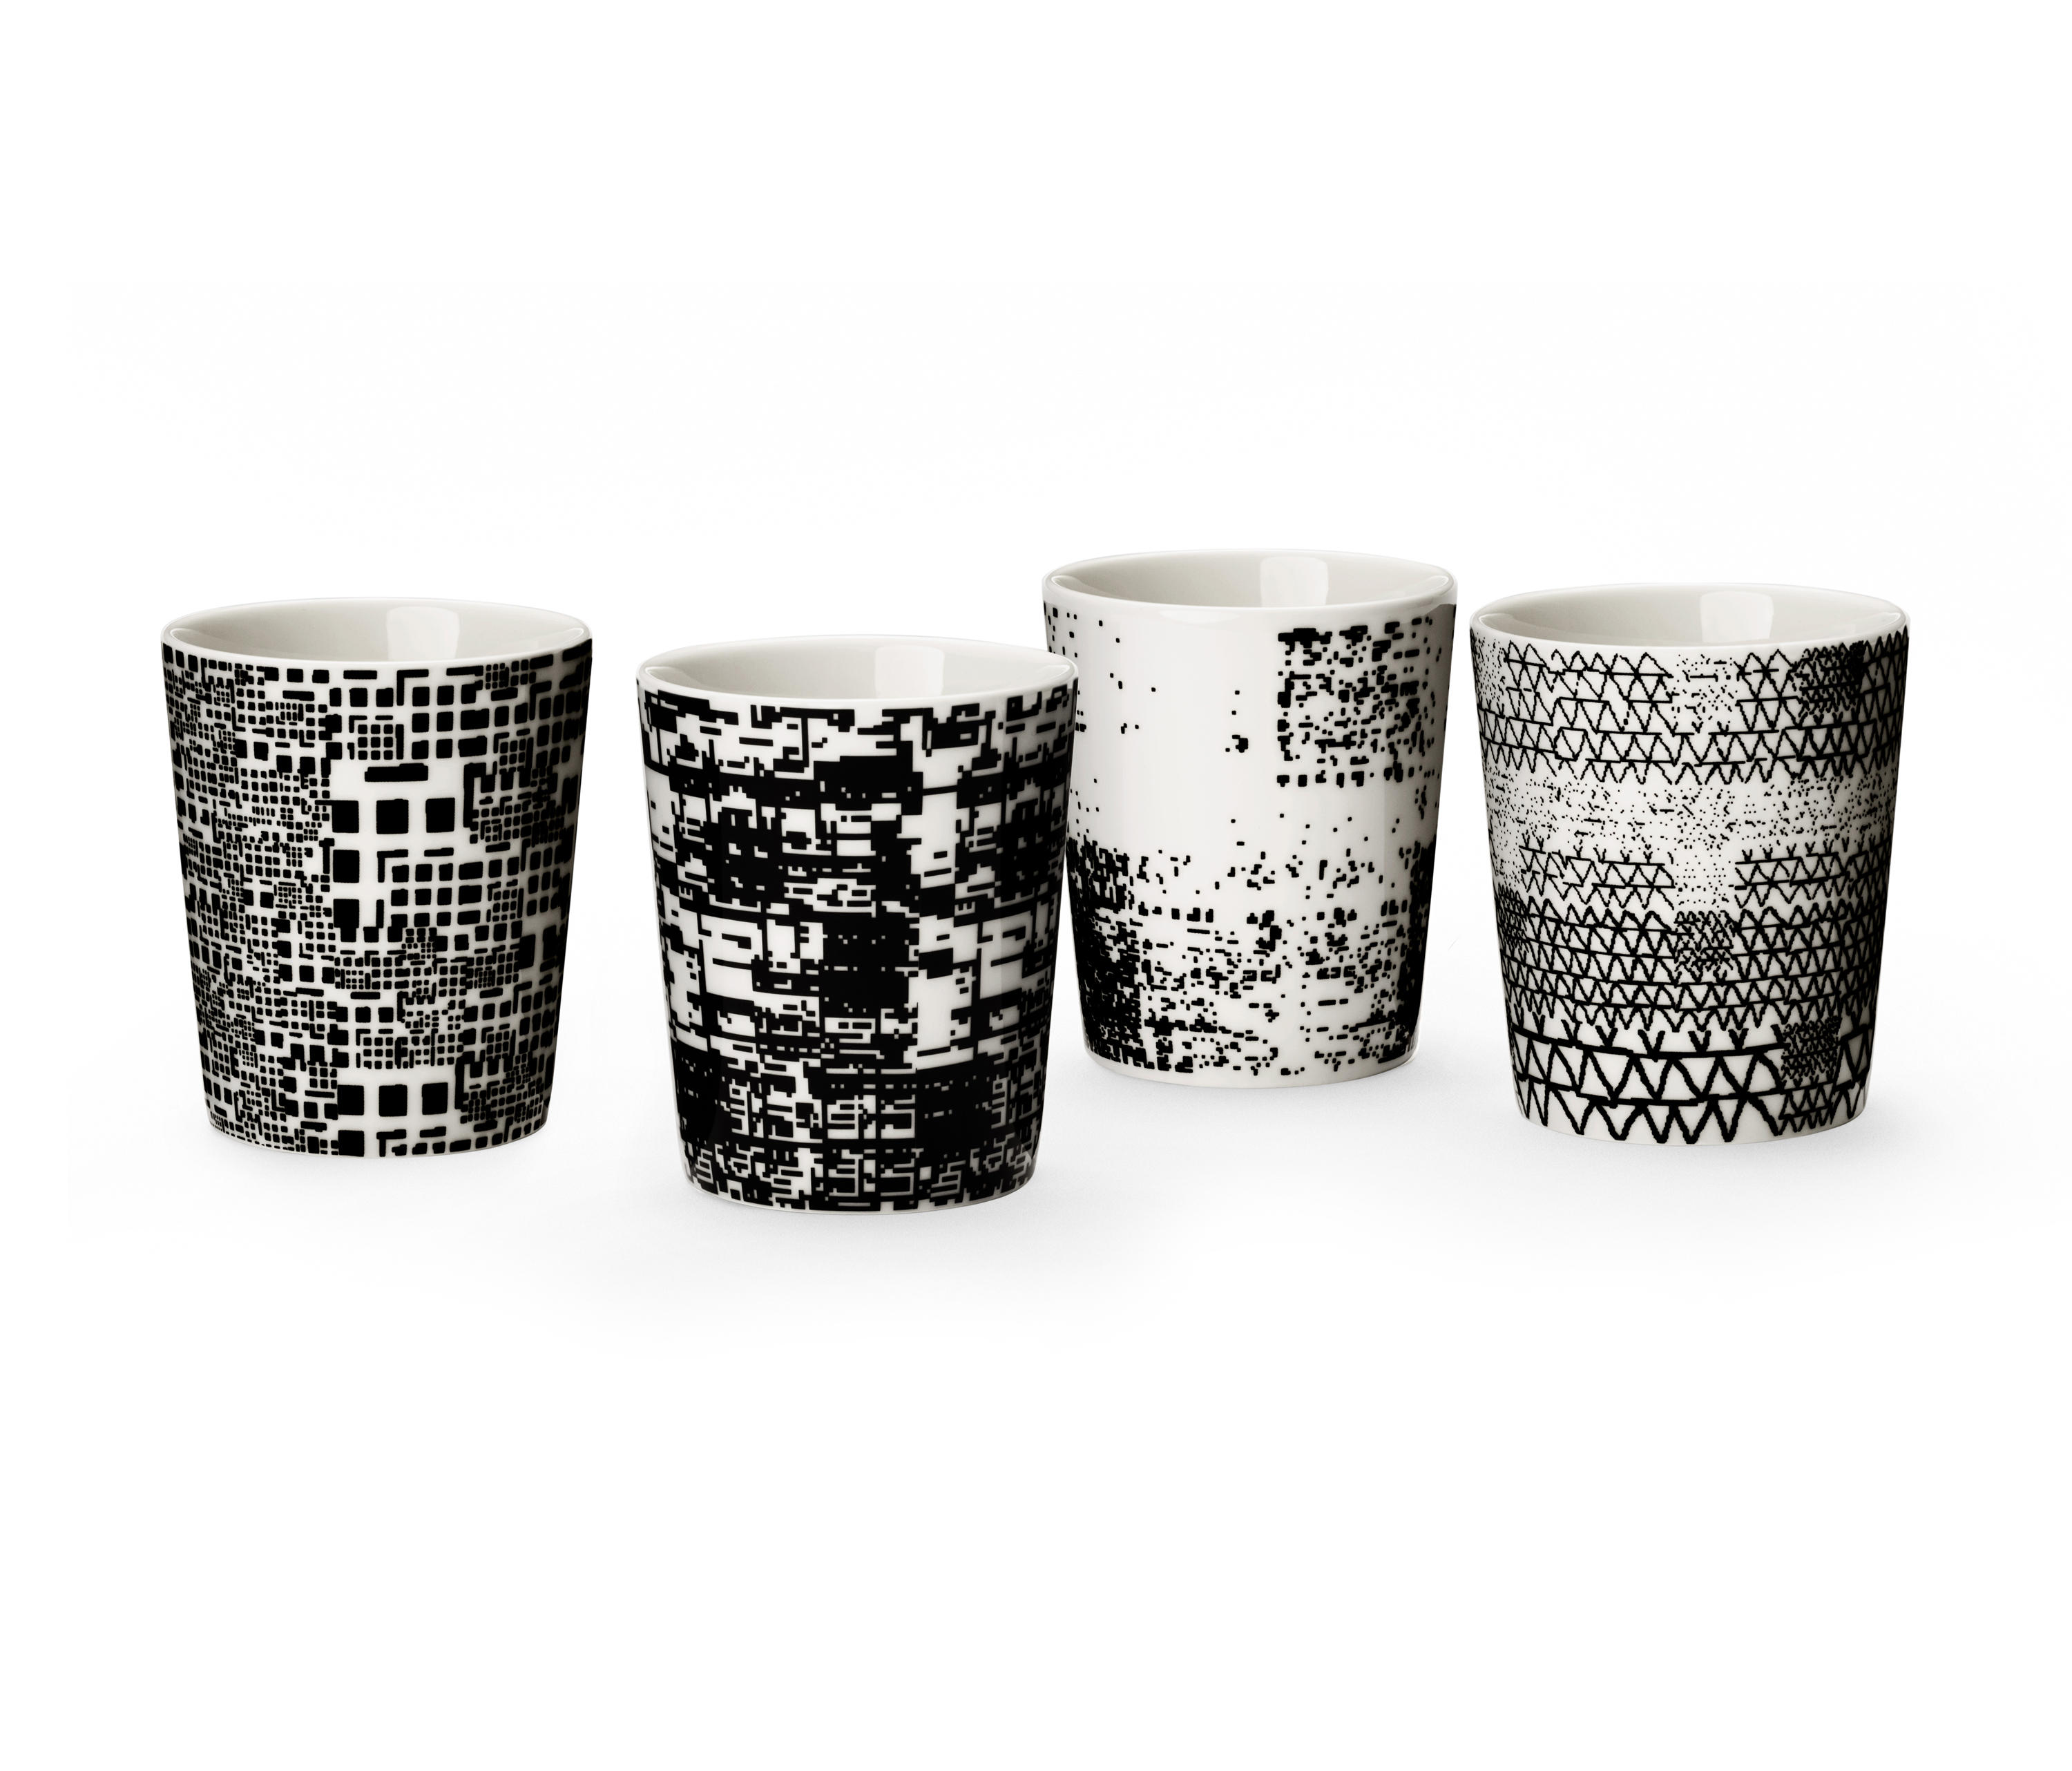 urban landscape mugs overview by design house stockholm - Dinnerware Design House Stockholm